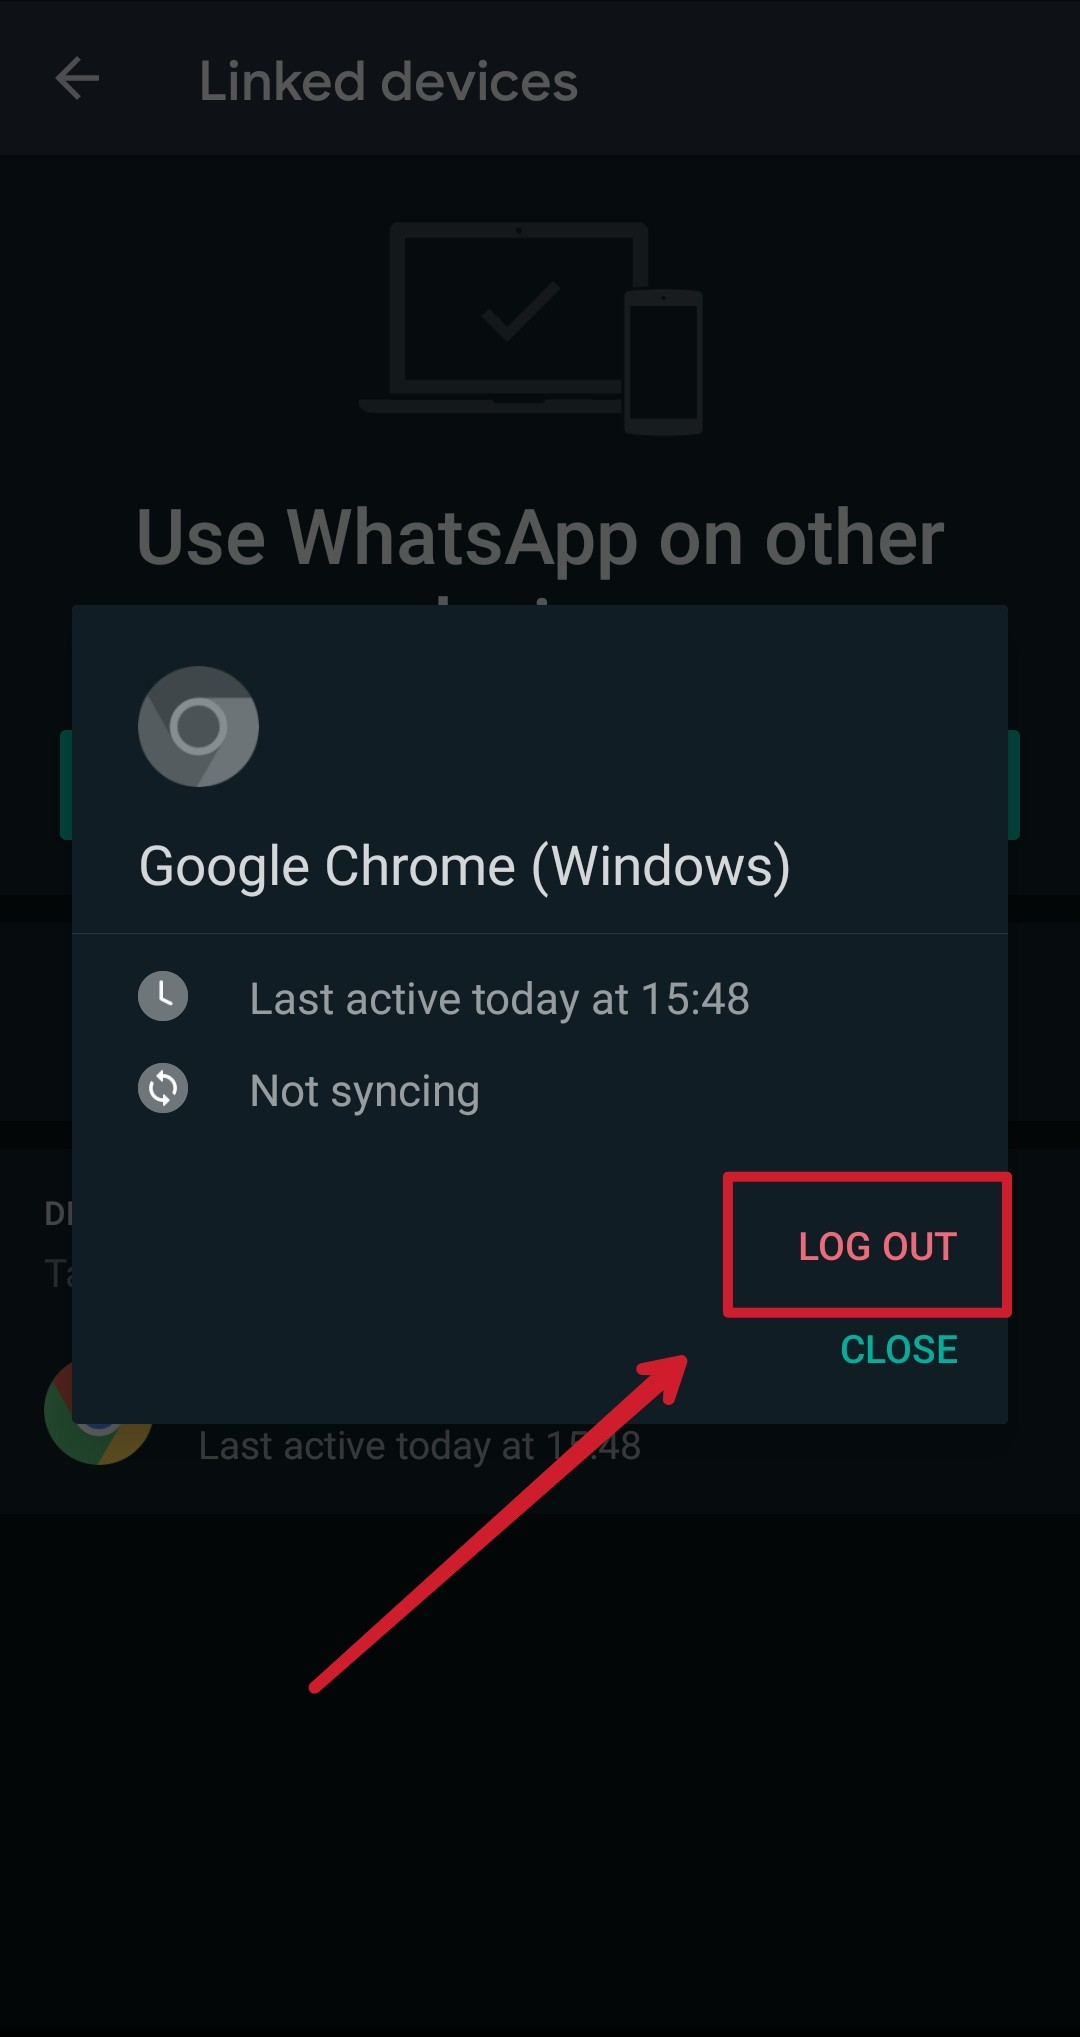 remove linked devices in whatsapp multi-device